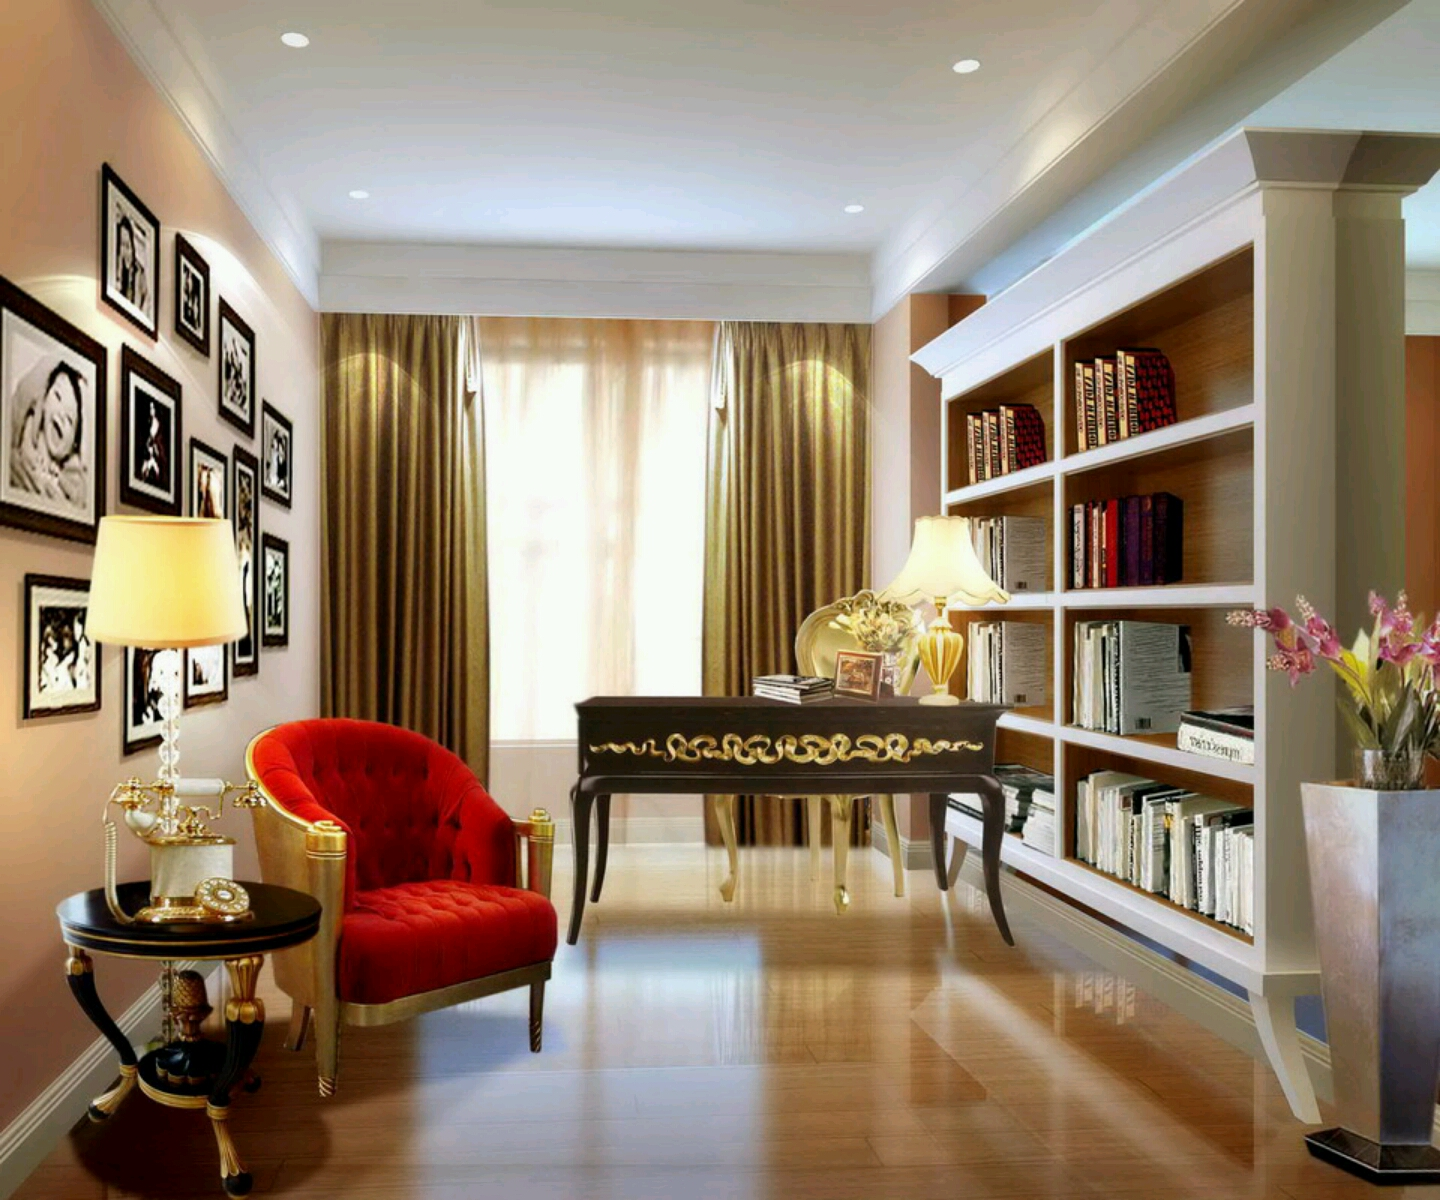 Modern+study+room+furnitures+designs+ideas.+%25284%2529.jpg